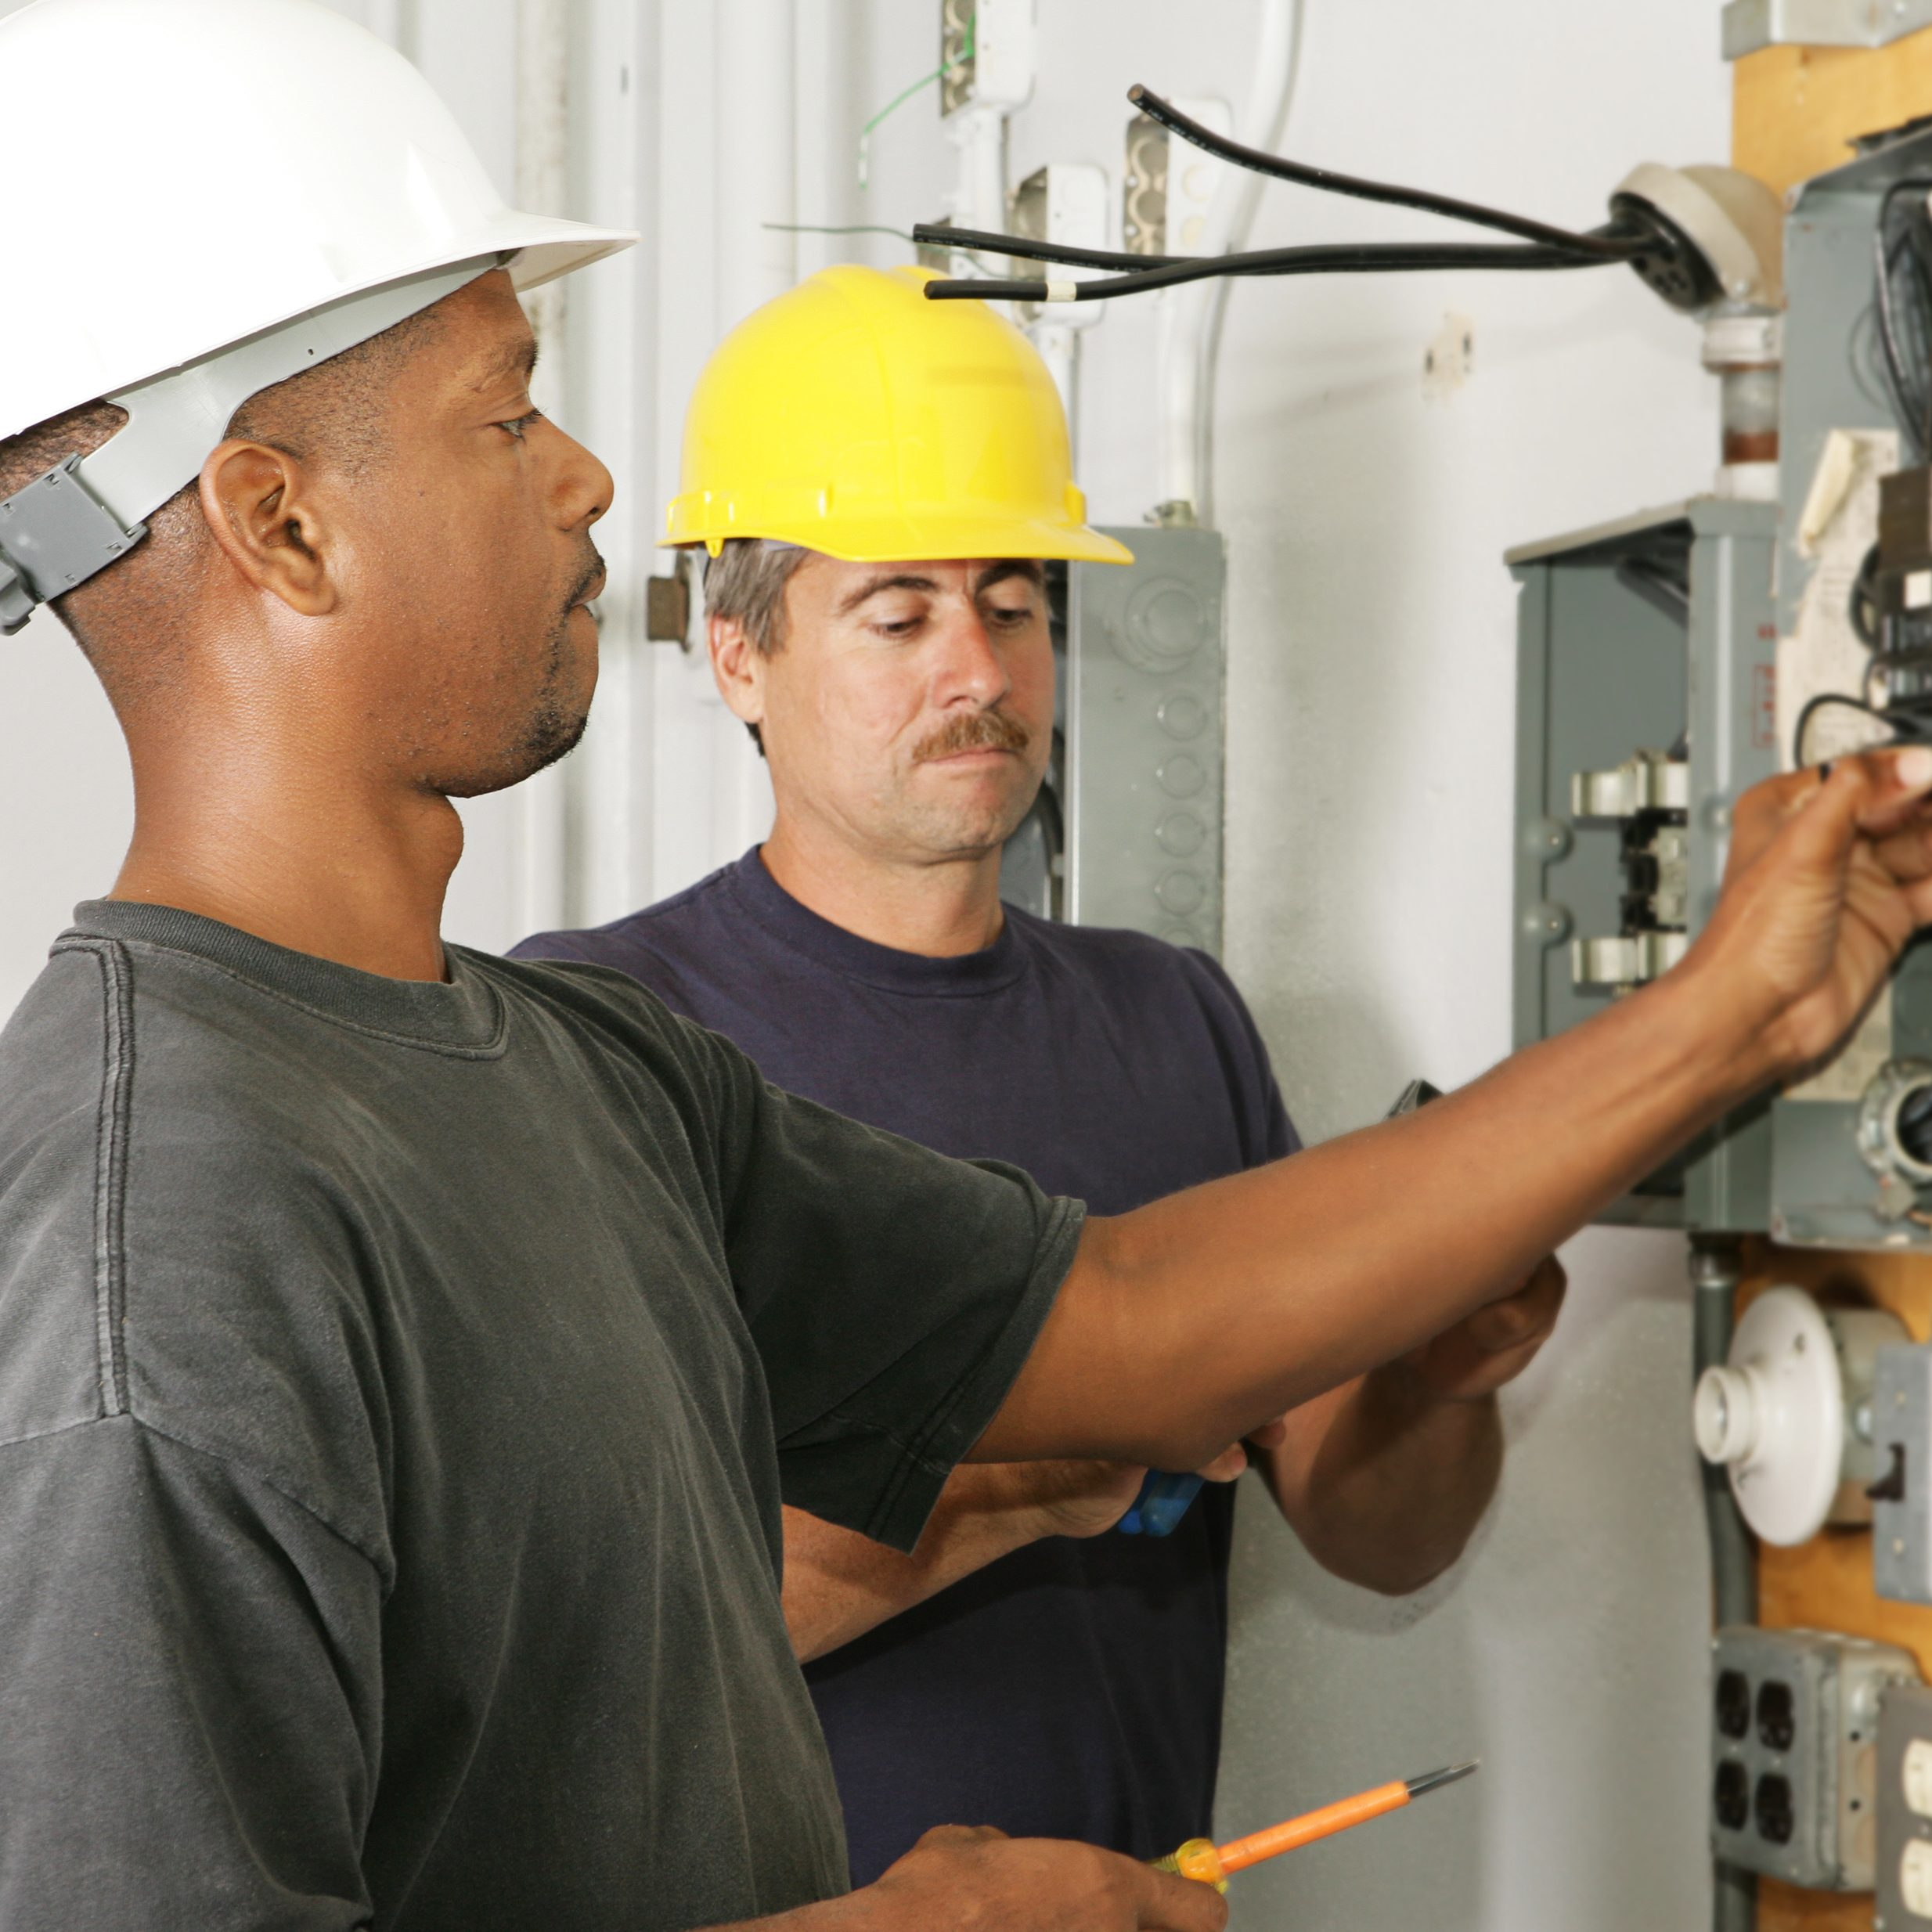 2 Electricians working on an electrical panel